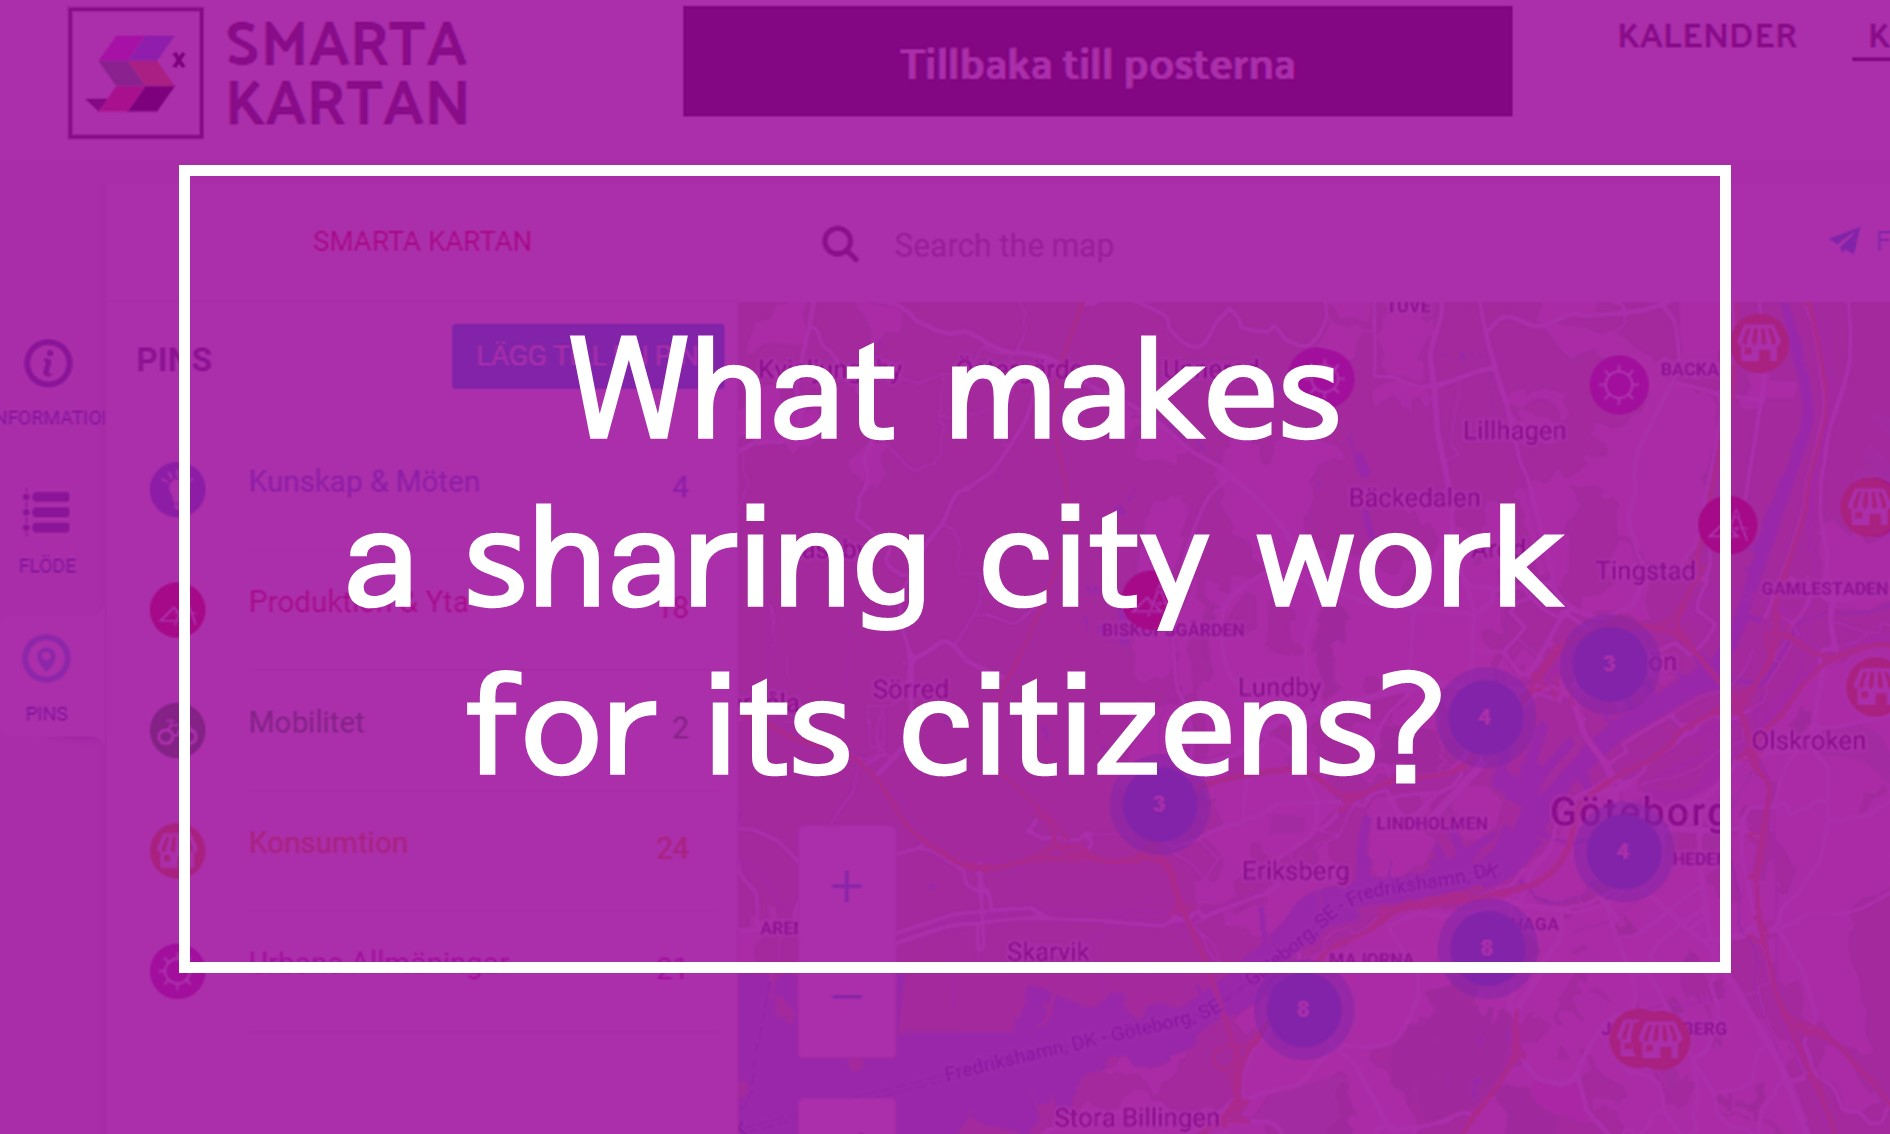 [Oversea News] What makes a sharing city work for its citizens?